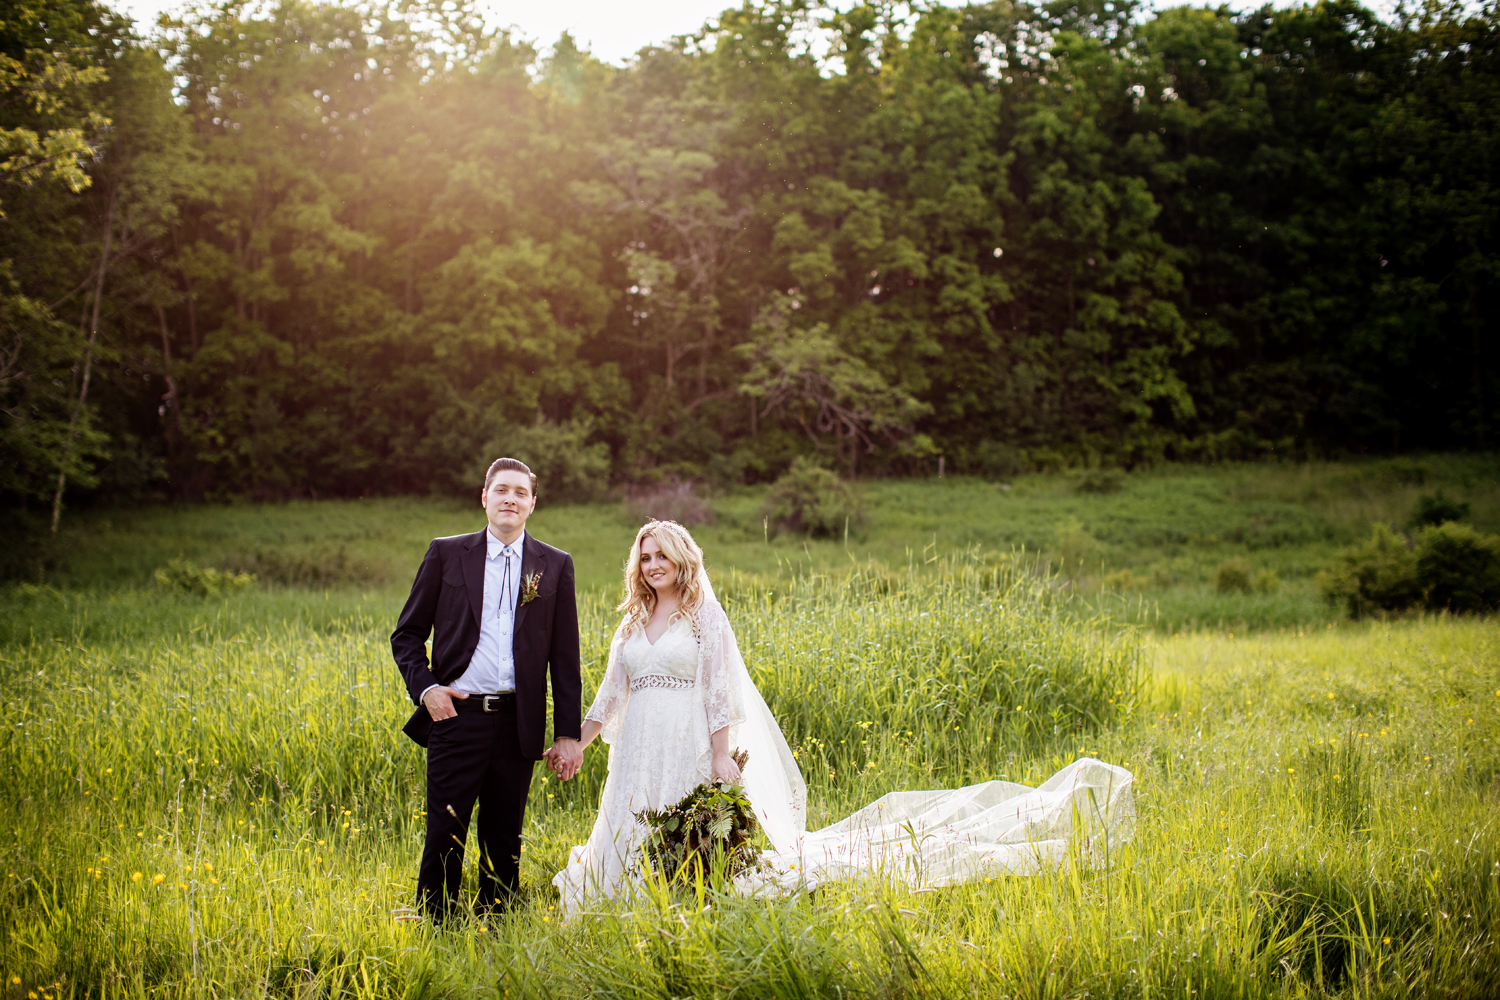 M&D Farm wedding photography15.jpg